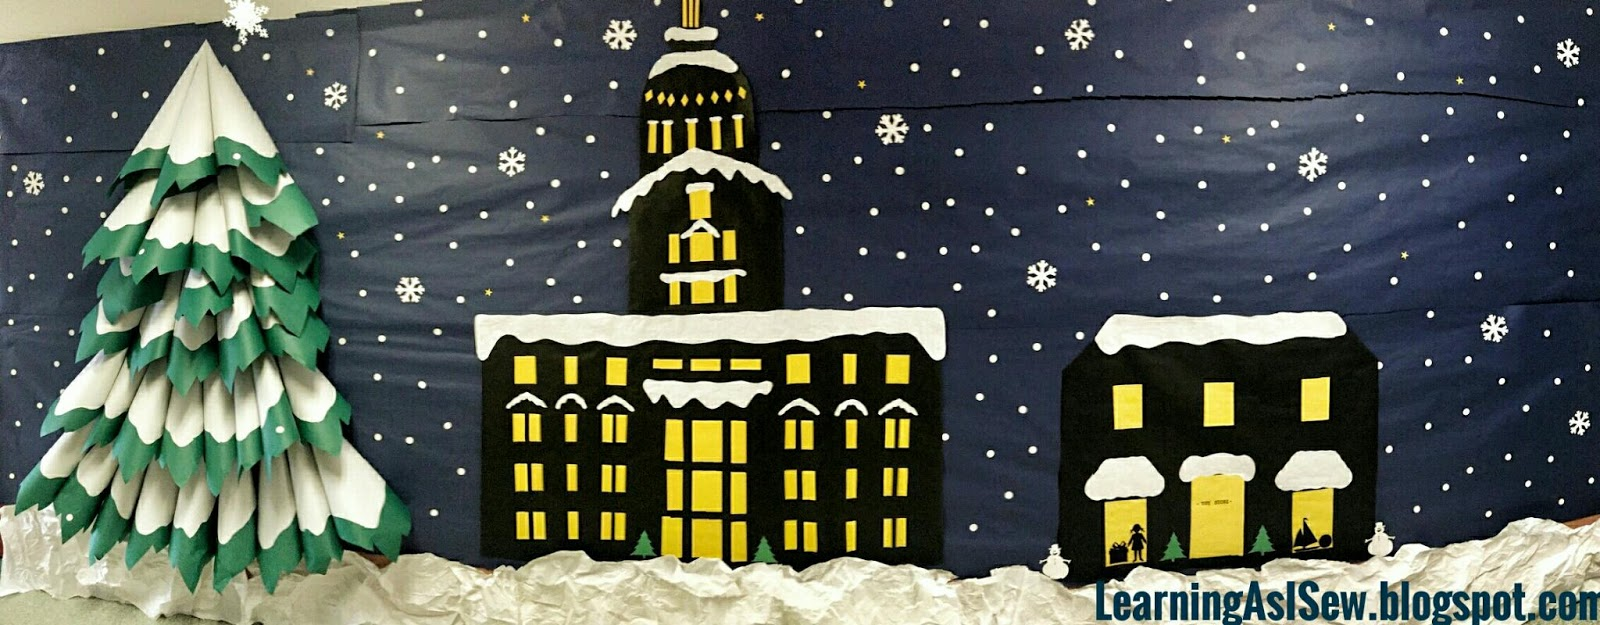 Learning As I Sew...bake, cut, and create: Polar Express ...